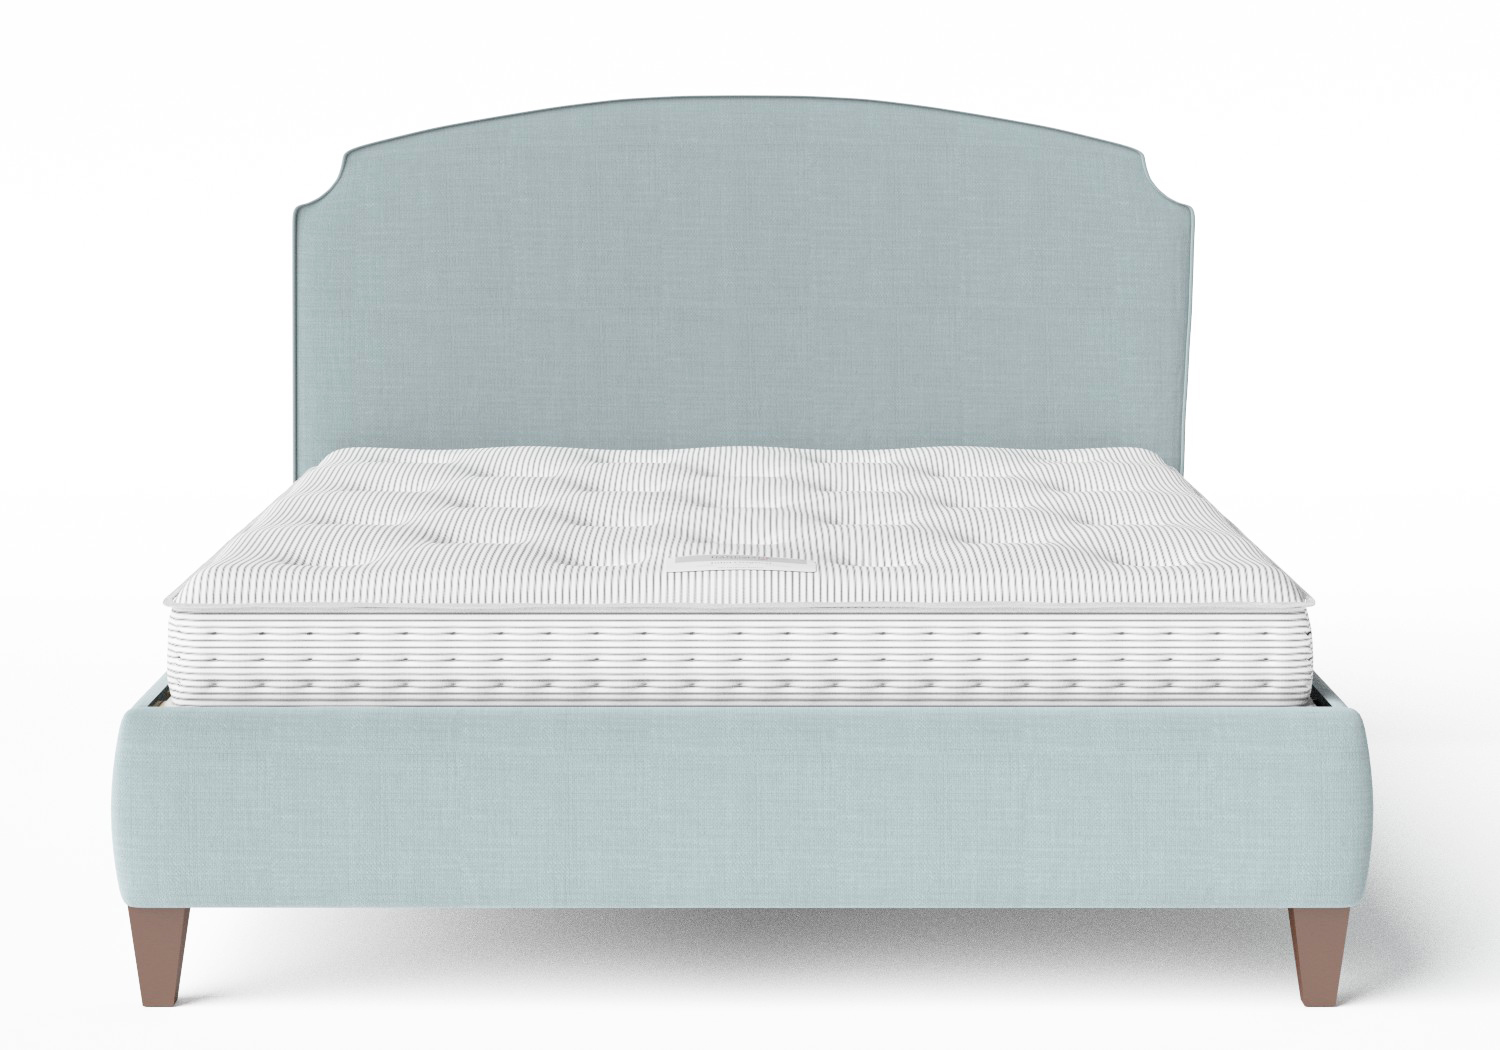 Lide Upholstered Bed in Wedgewood fabric with piping shown with Juno 1 mattress